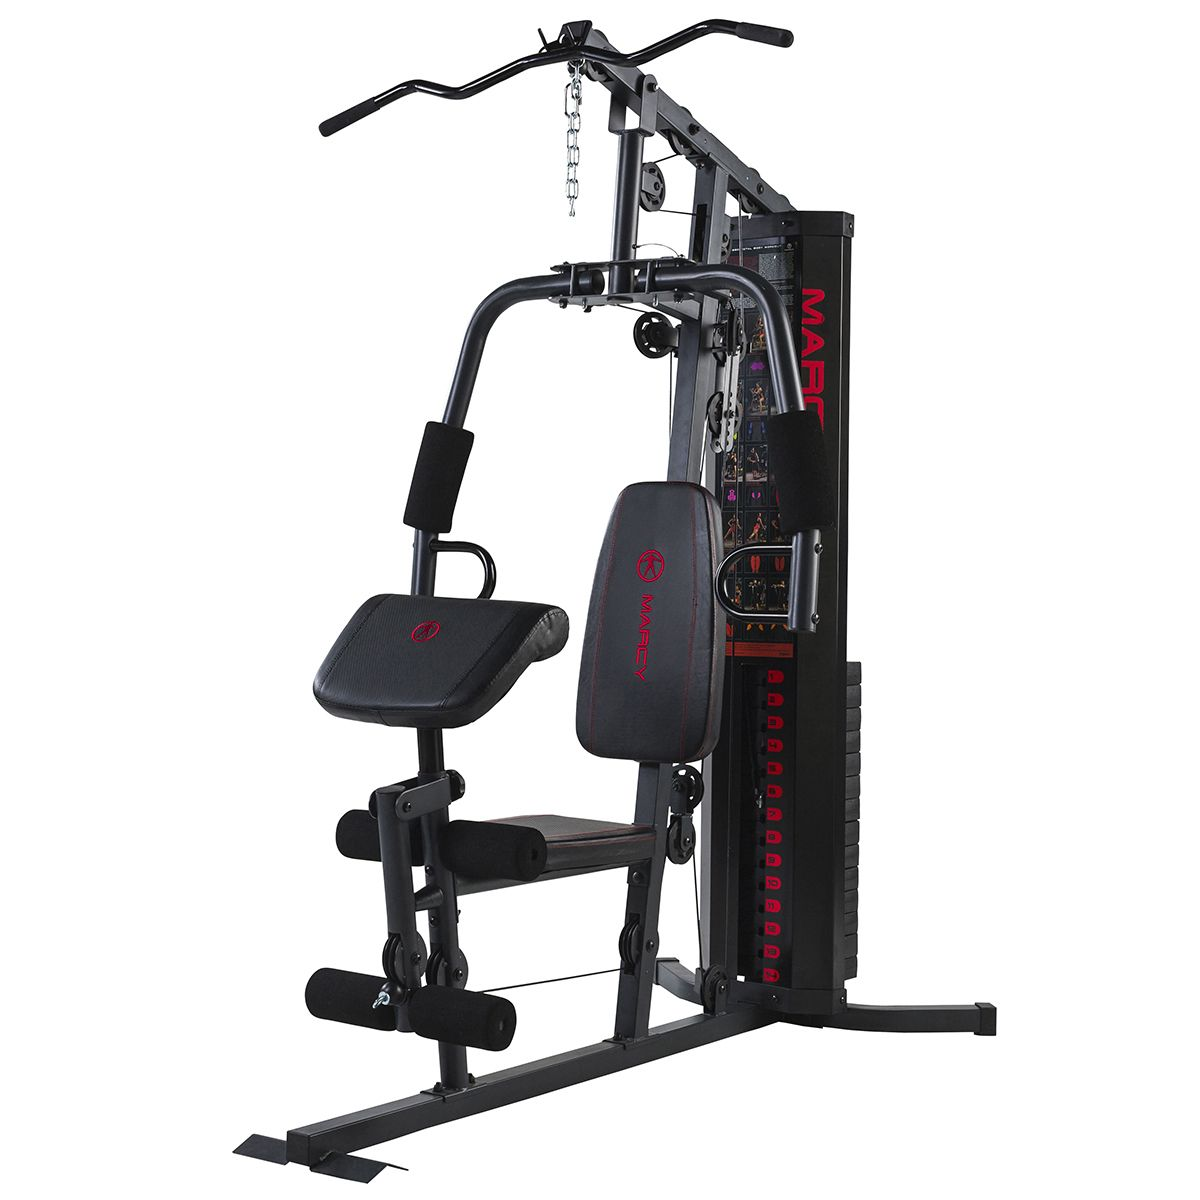 gym chest chair children s seat height marcy eclipse hg3000 compact home lat pulldown